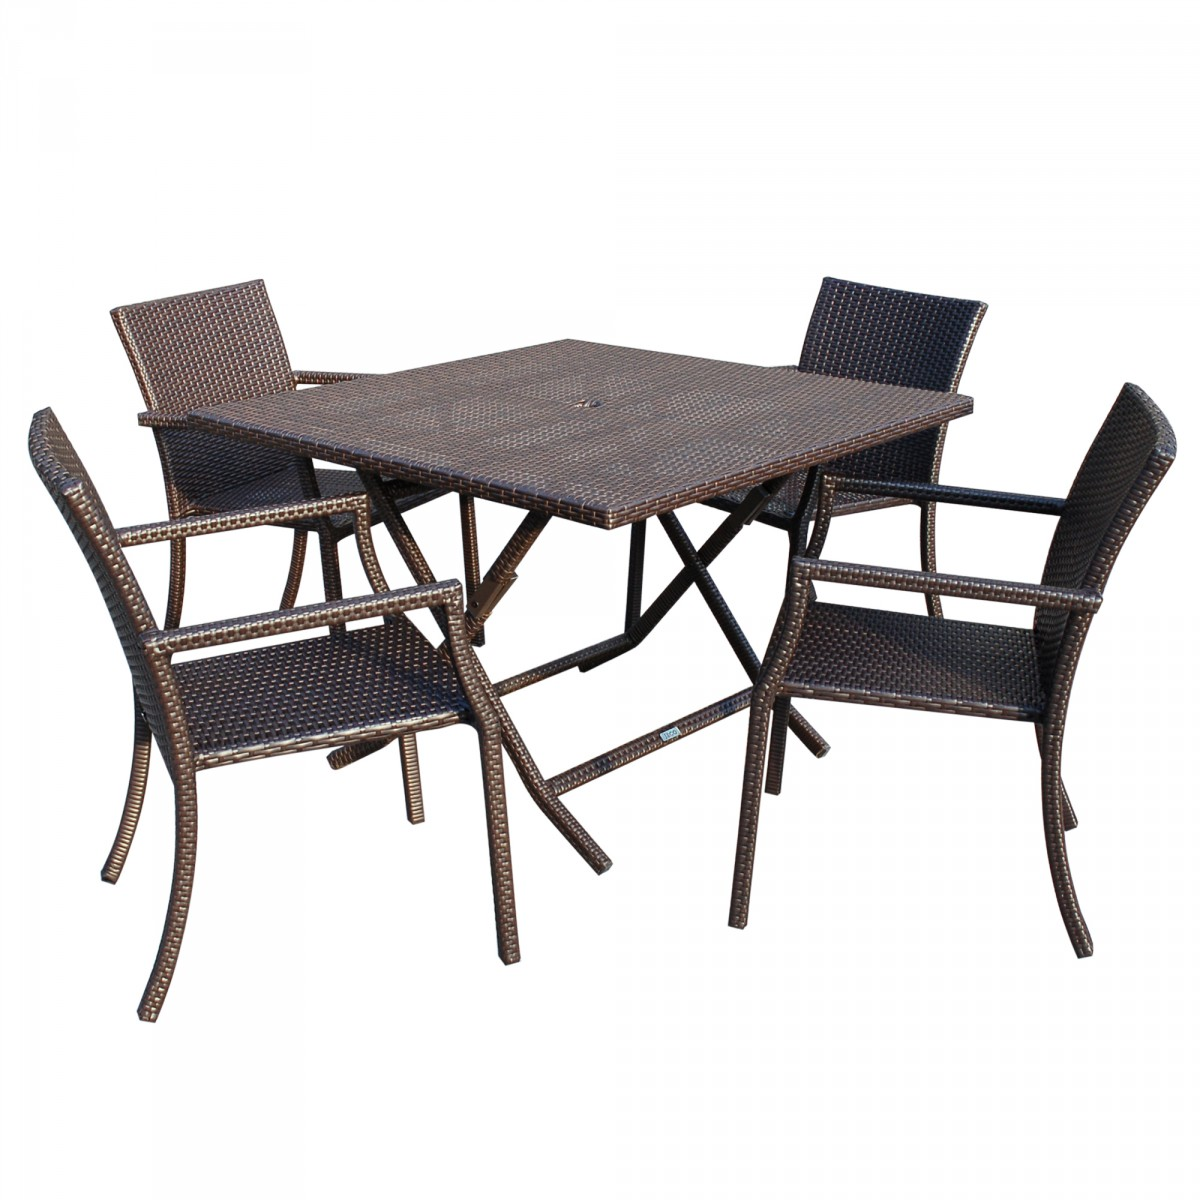 5pcs Cafe Square Back Chairs And Folding Wicker Table Dining Set